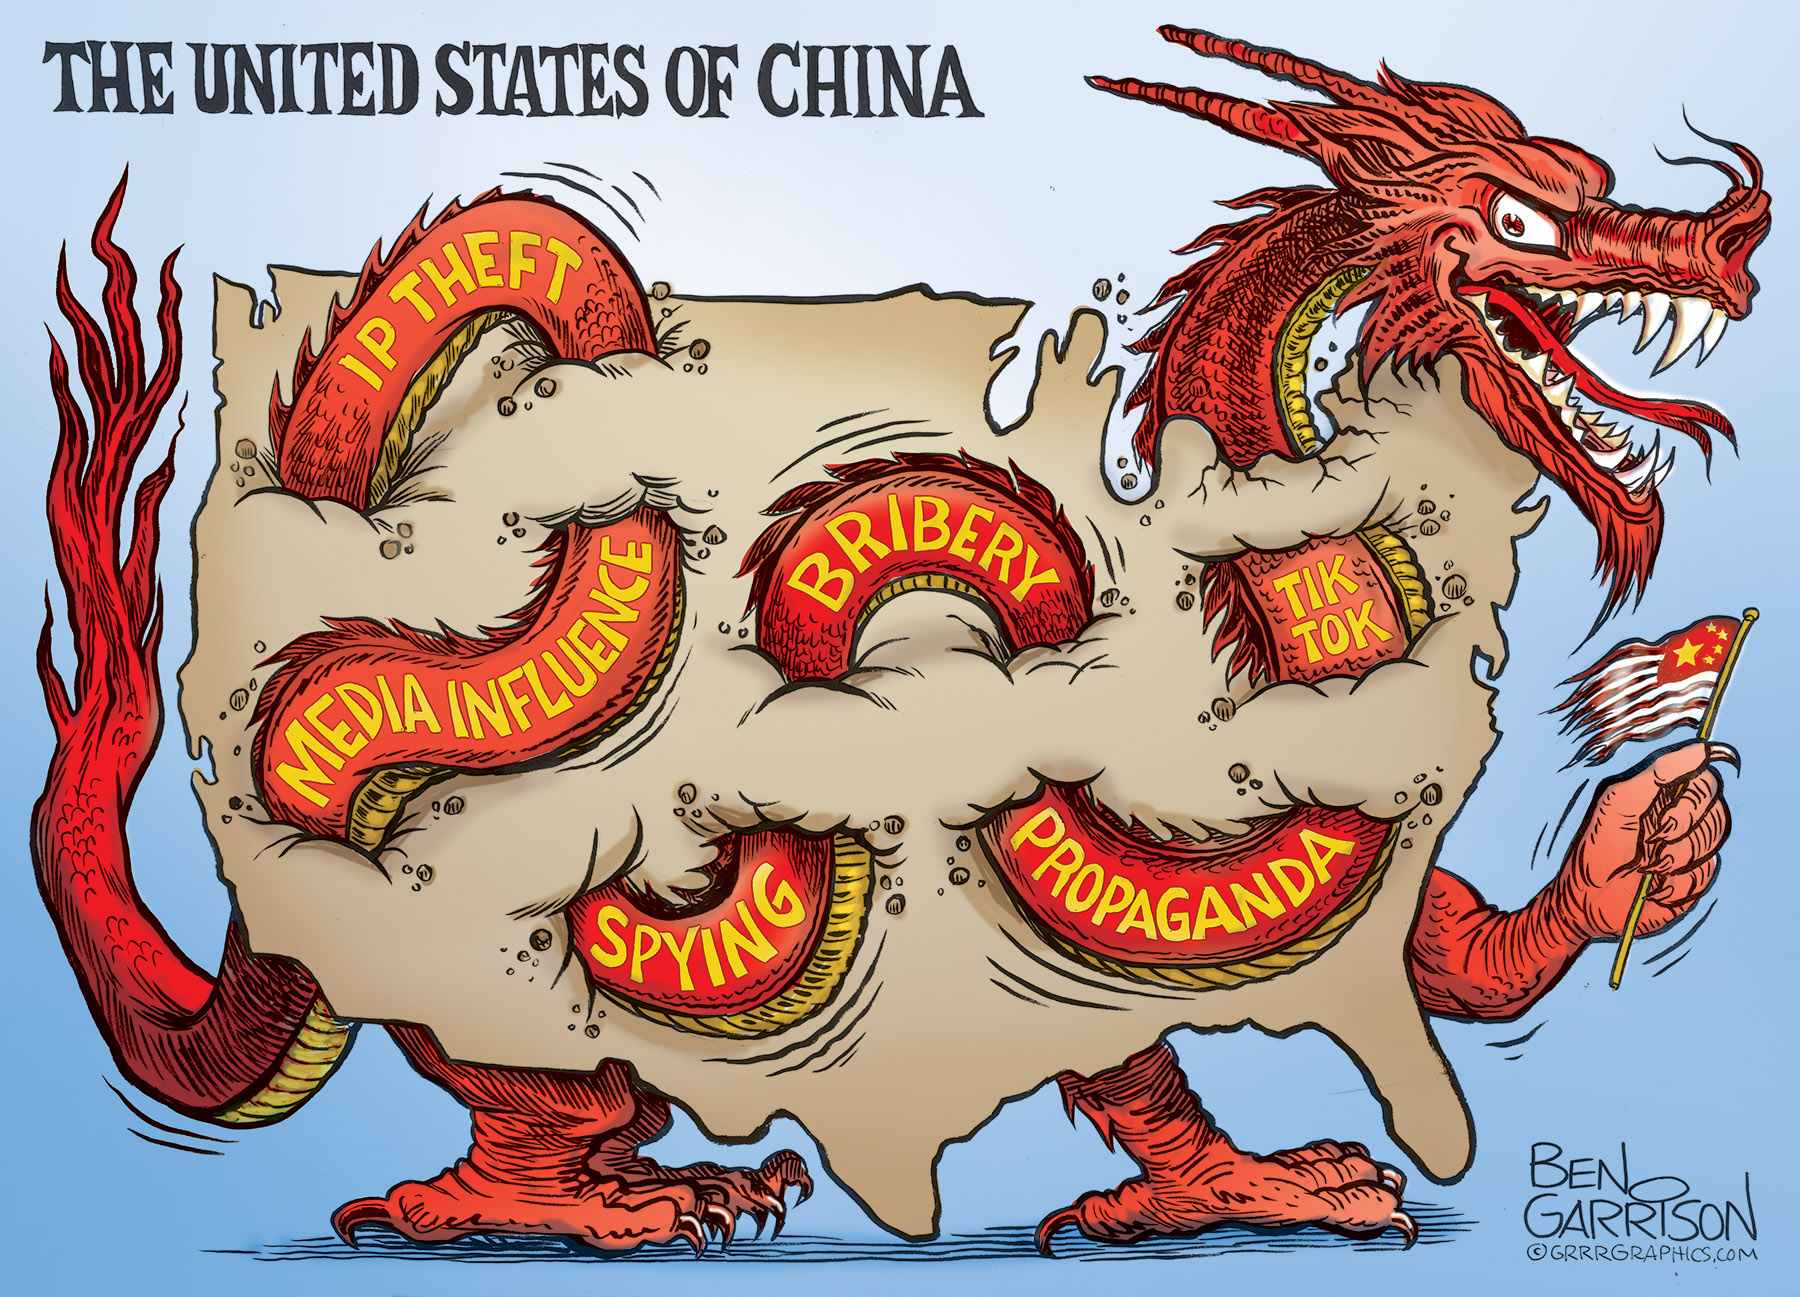 THE UNITED STATES OF CHINA